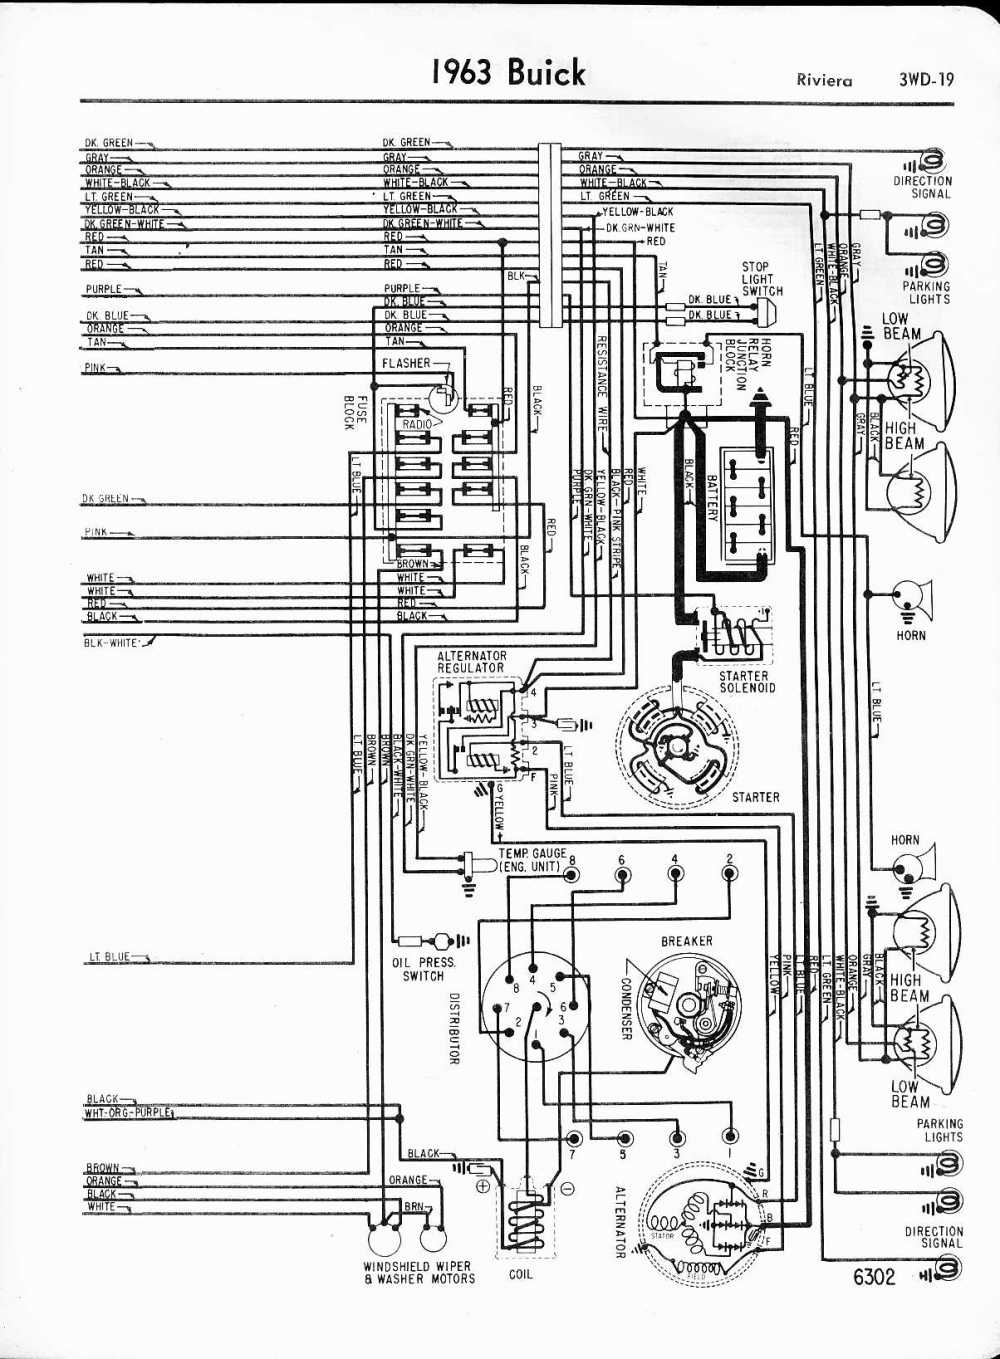 medium resolution of 1963 buick wiring harness wiring diagram blogs saturn astra wiring diagram 1963 buick wiring harness wiring